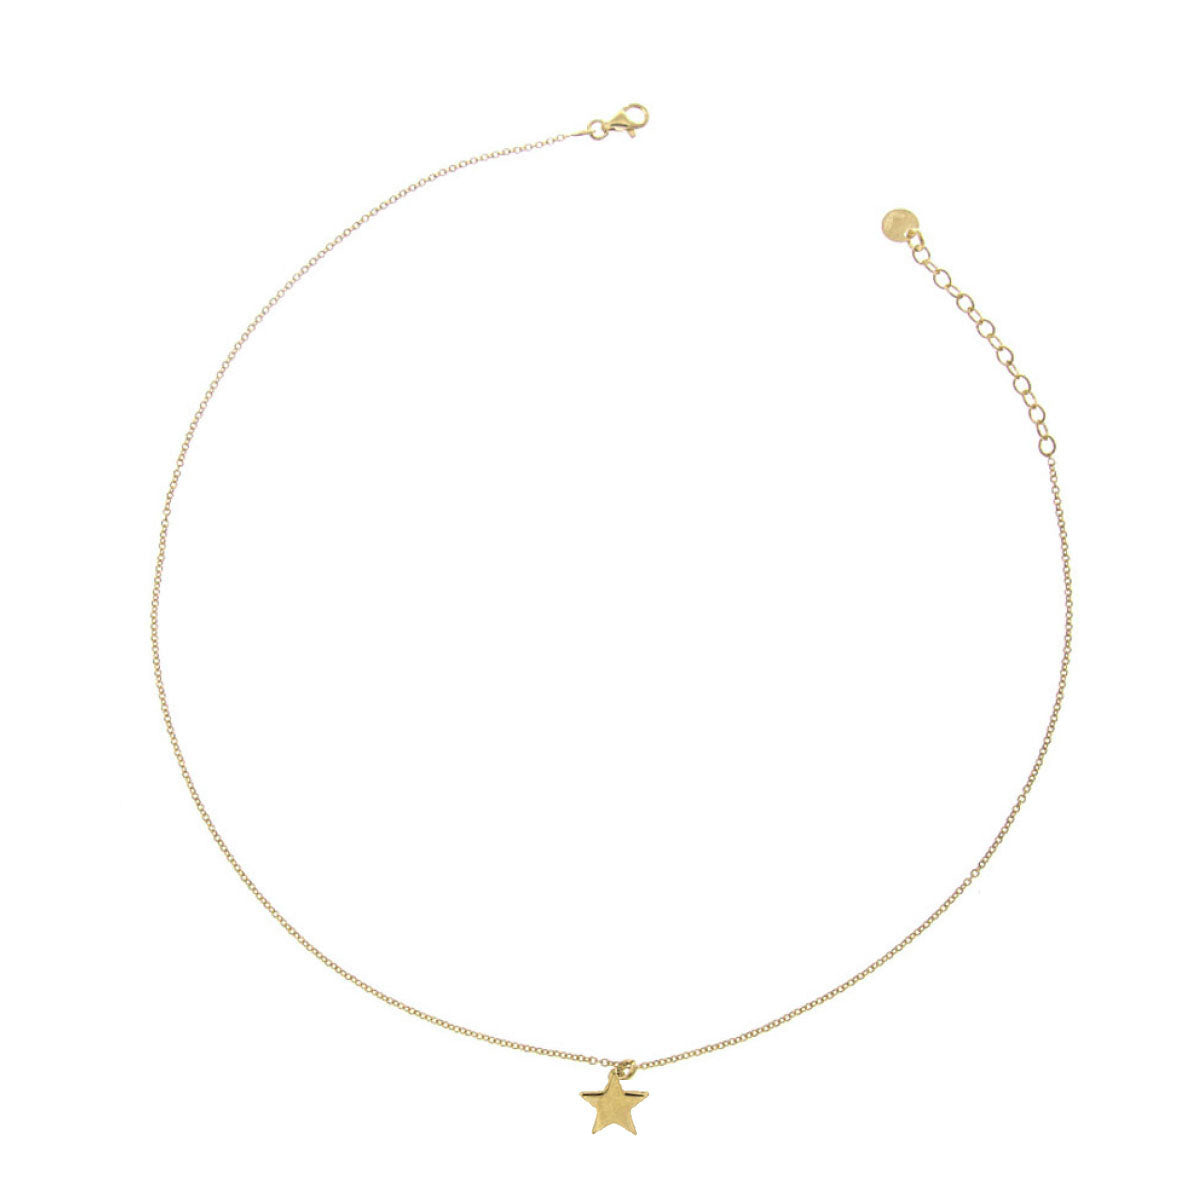 Chokers - Choker With Central Rounded Subject - Star - 2 | Rue des Mille